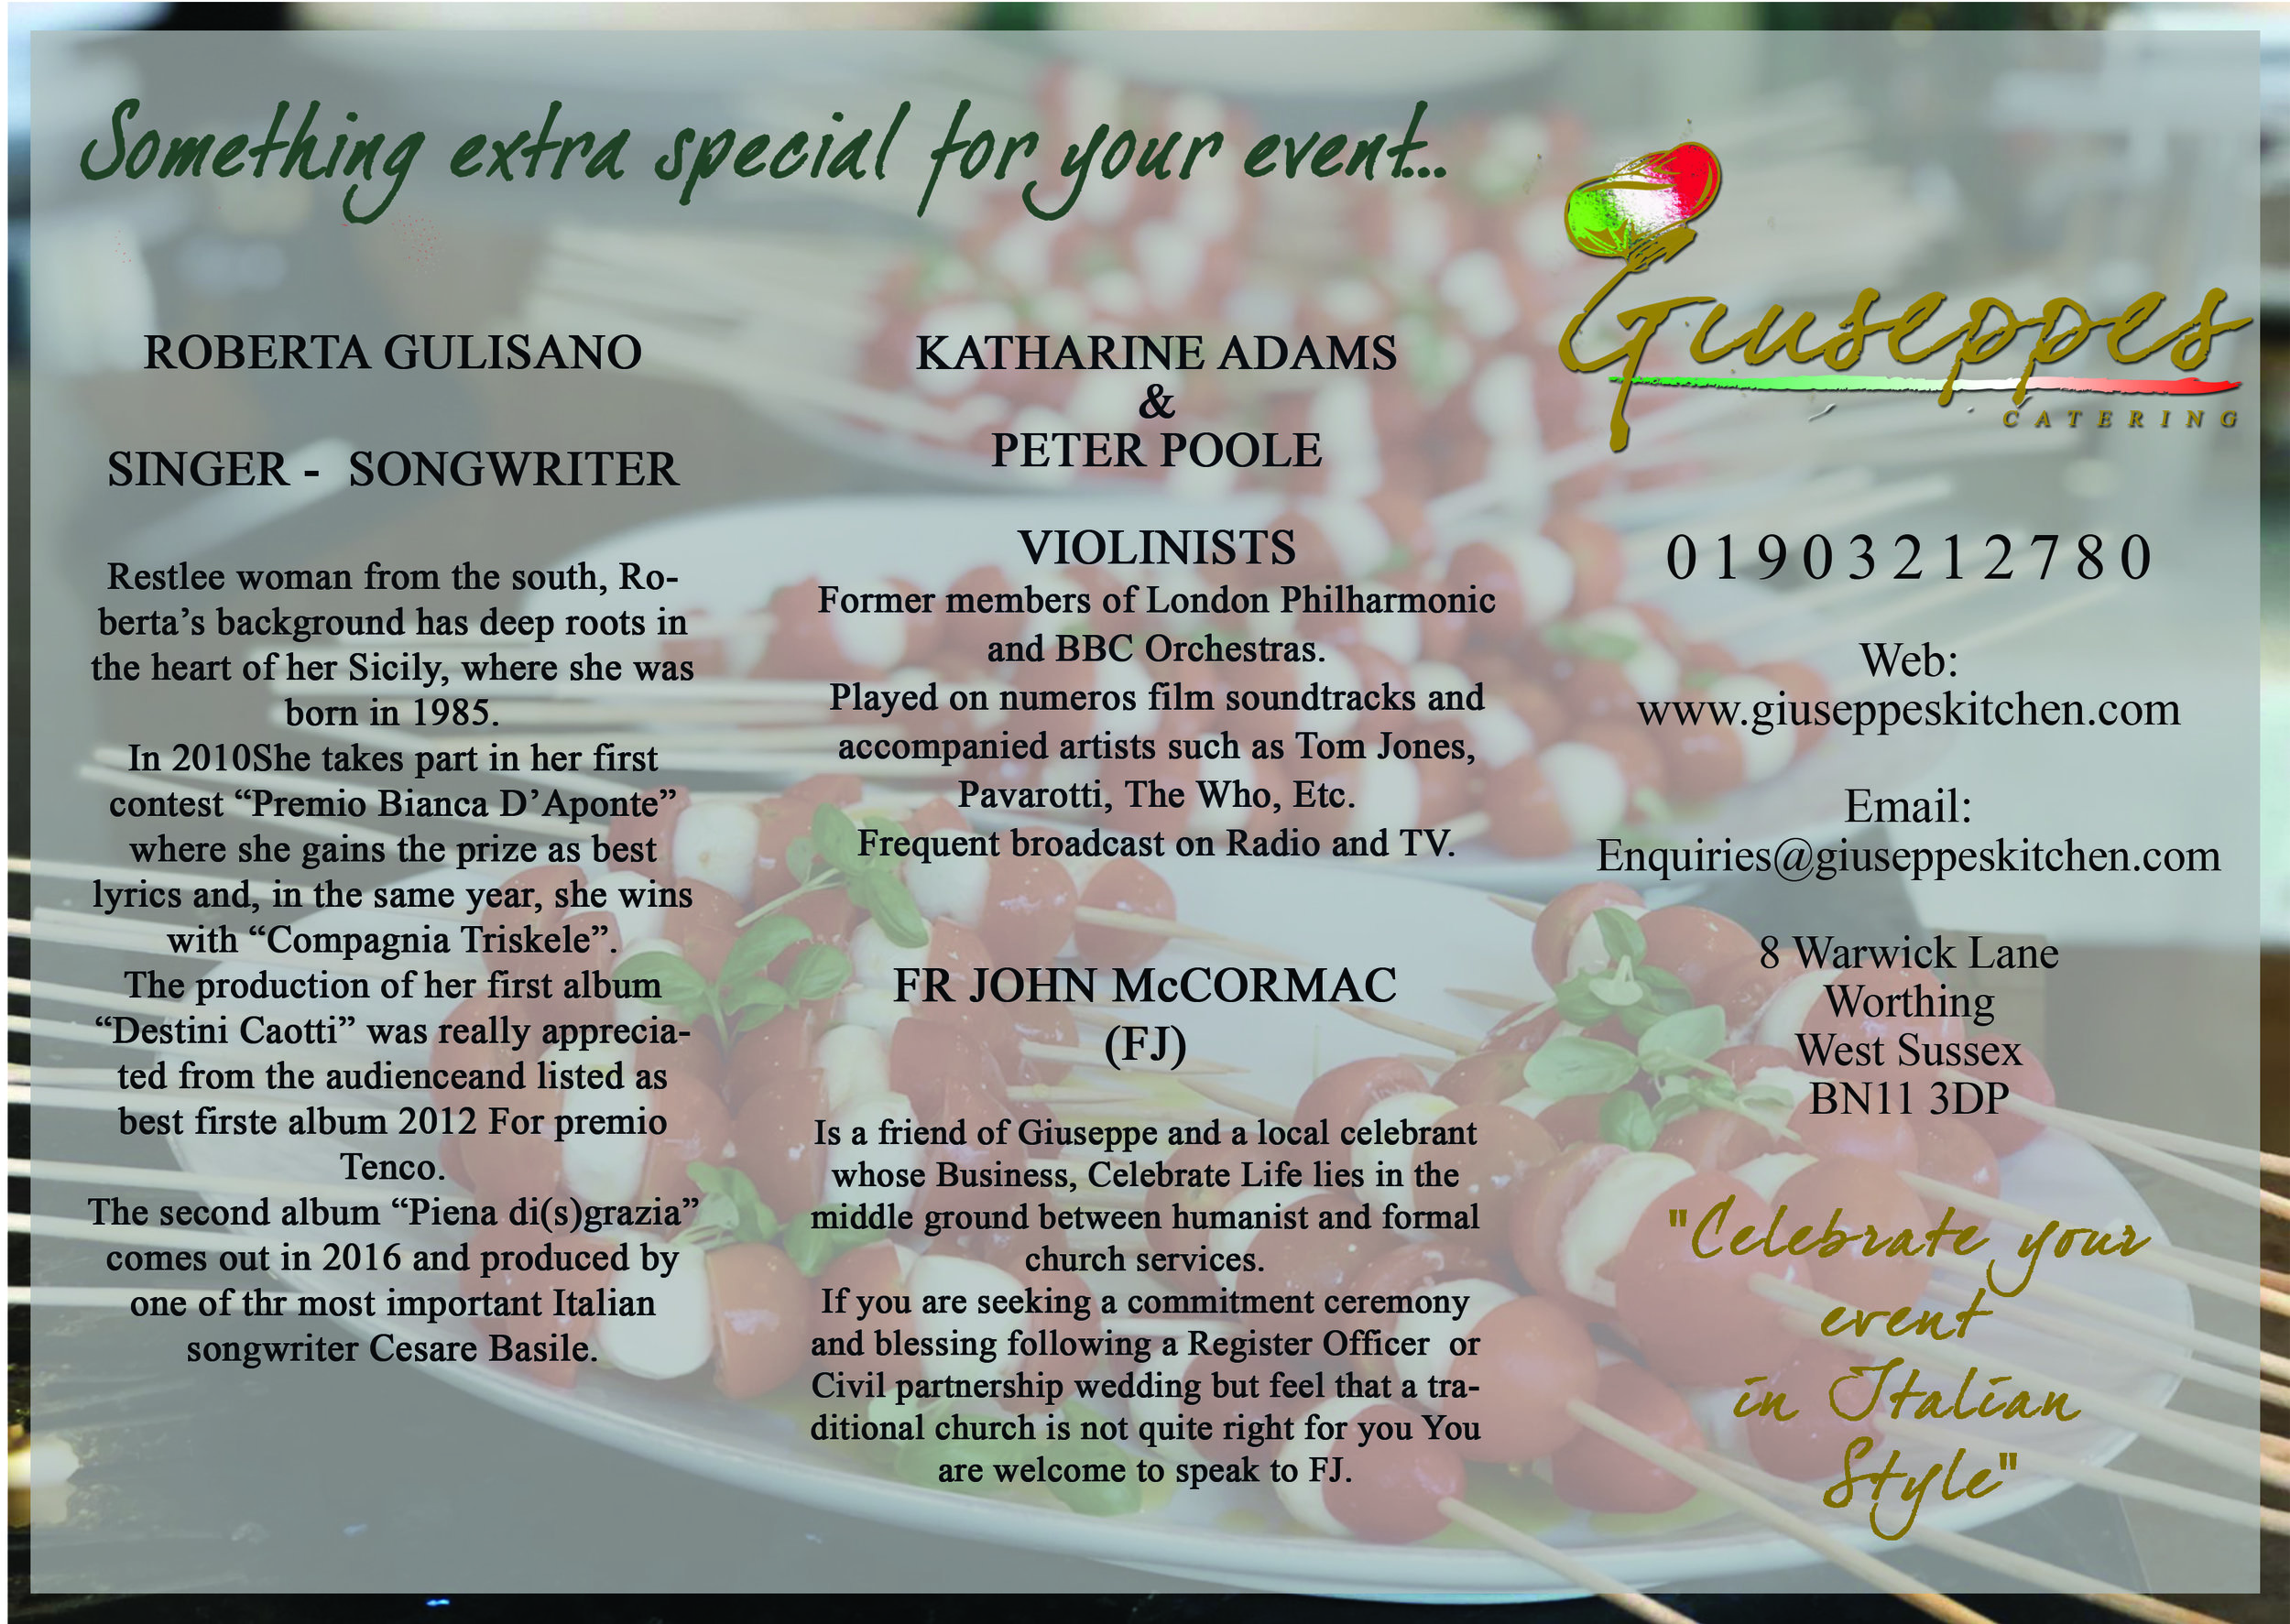 catering leaflet copy.jpg